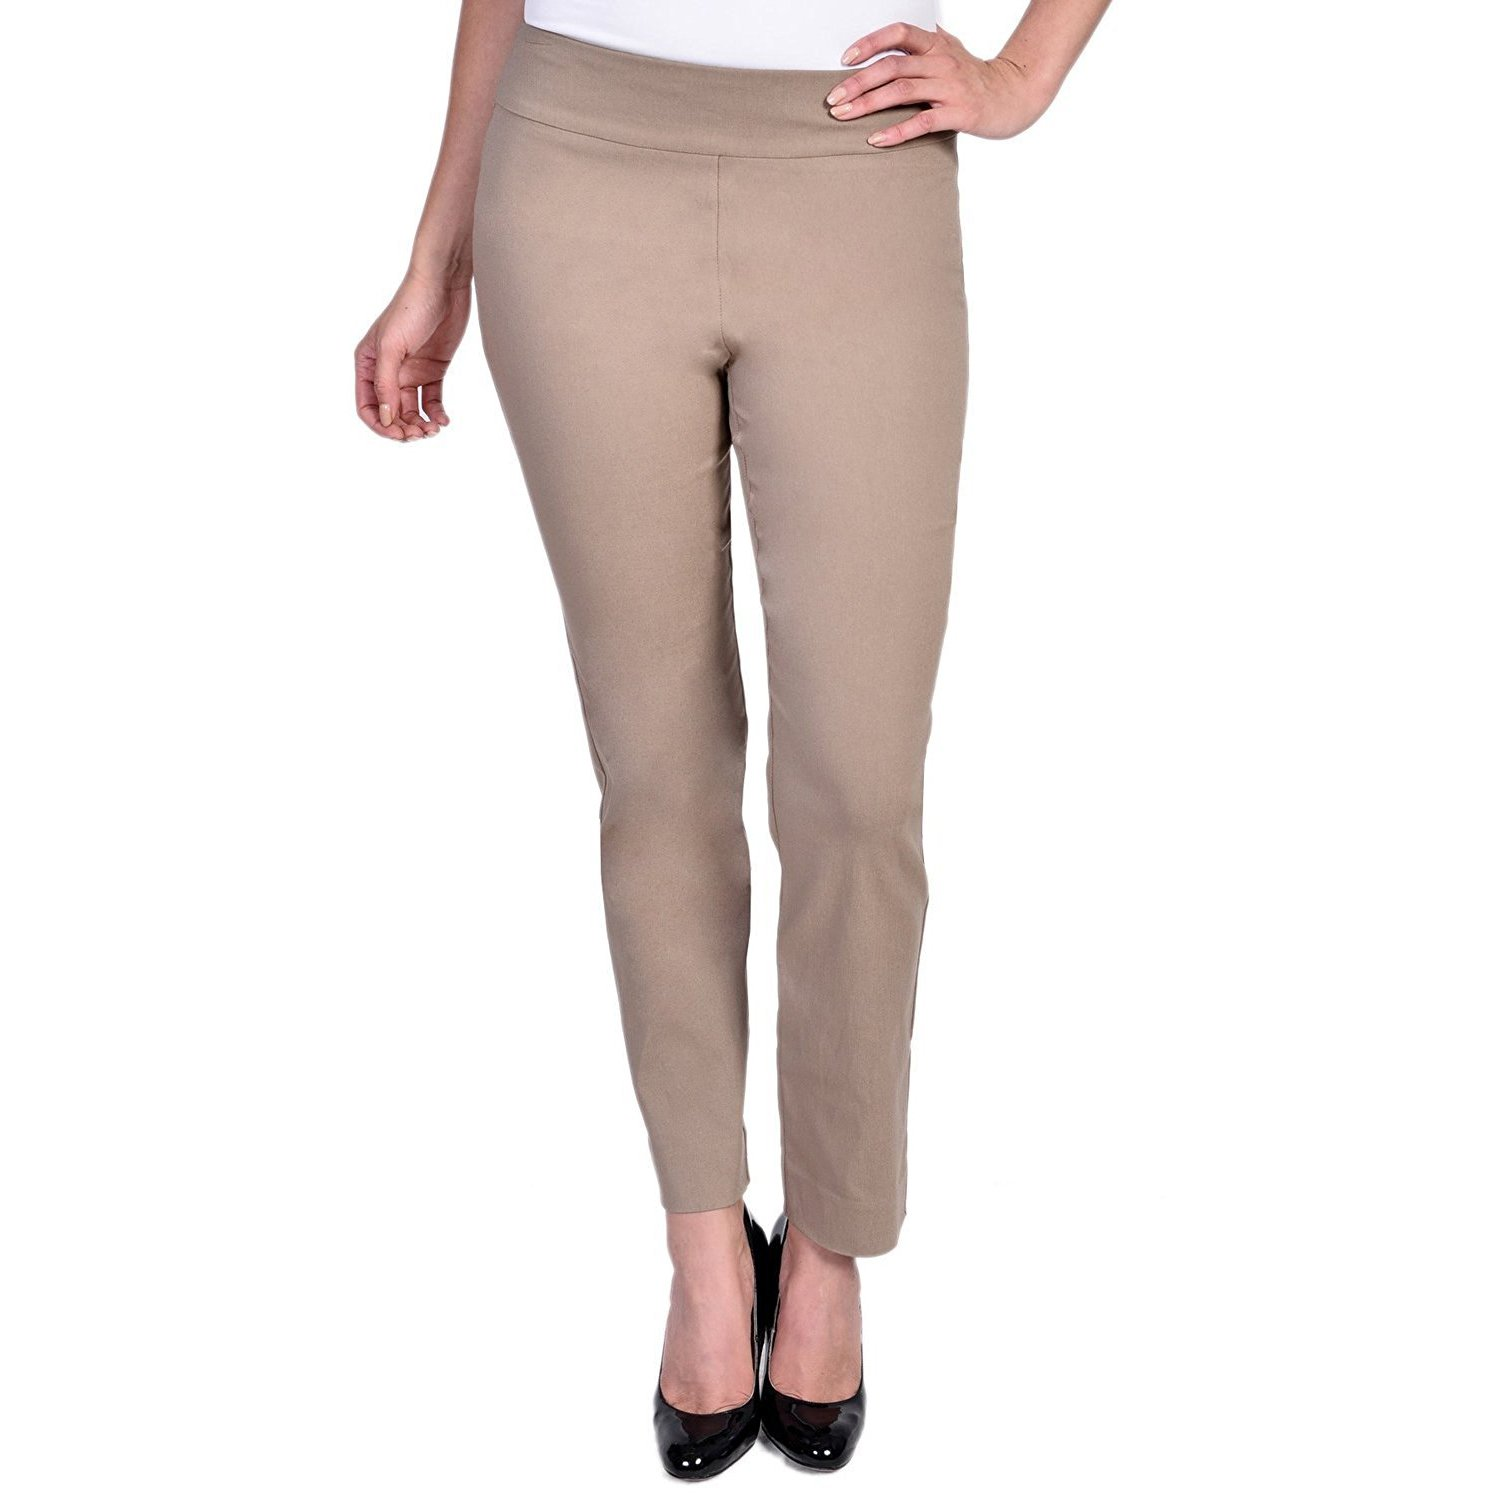 Krazy Larry Women's Pull-On Ankle Pants Taupe Pants